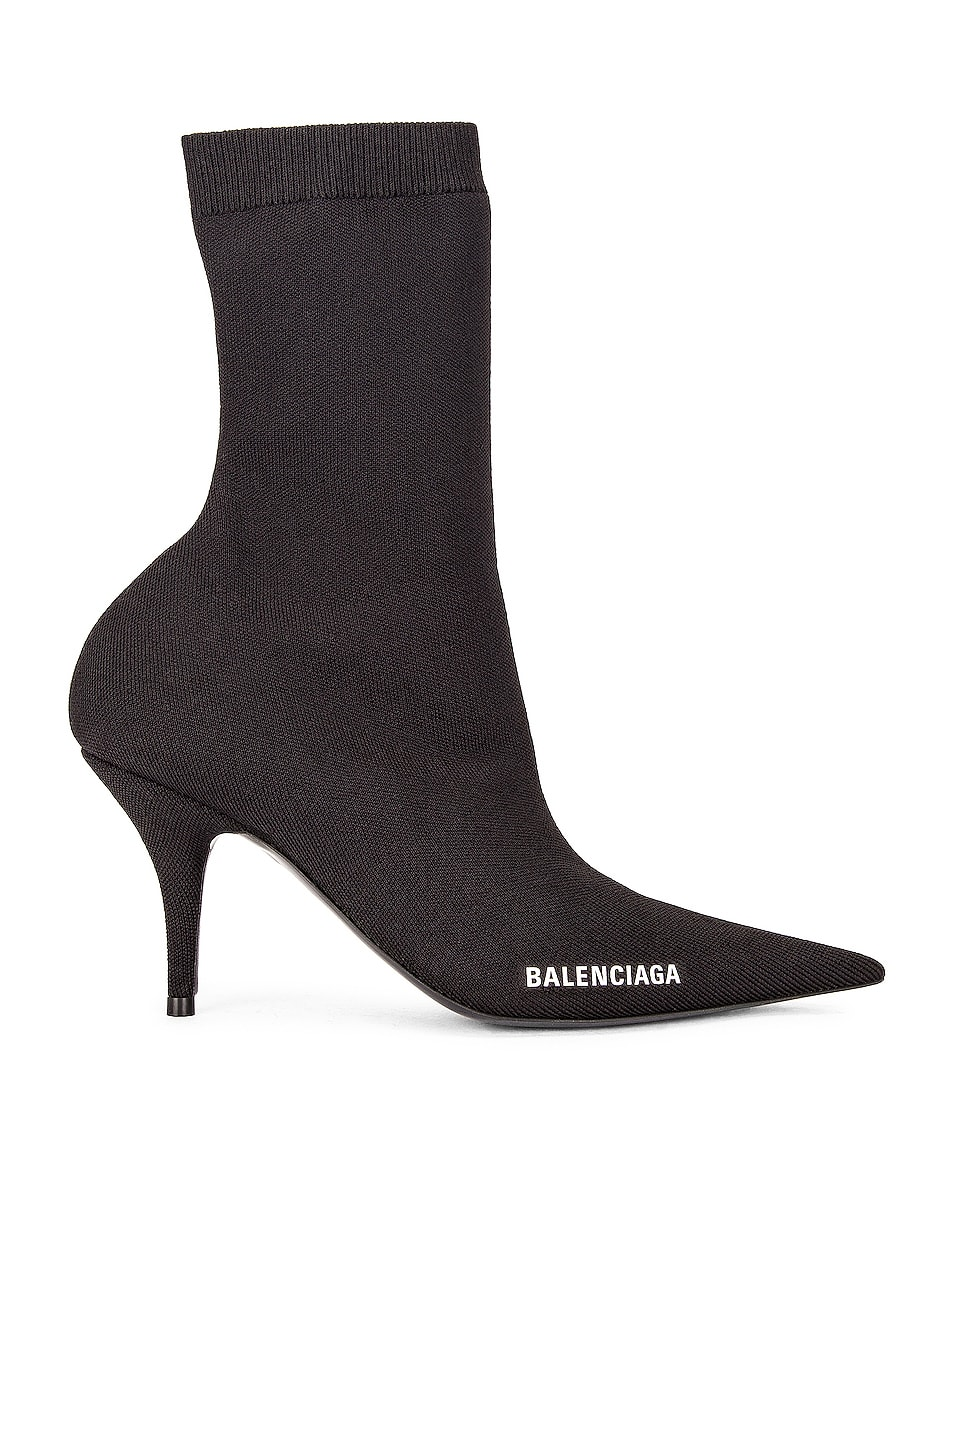 Image 1 of Balenciaga Knife Booties in Black & White